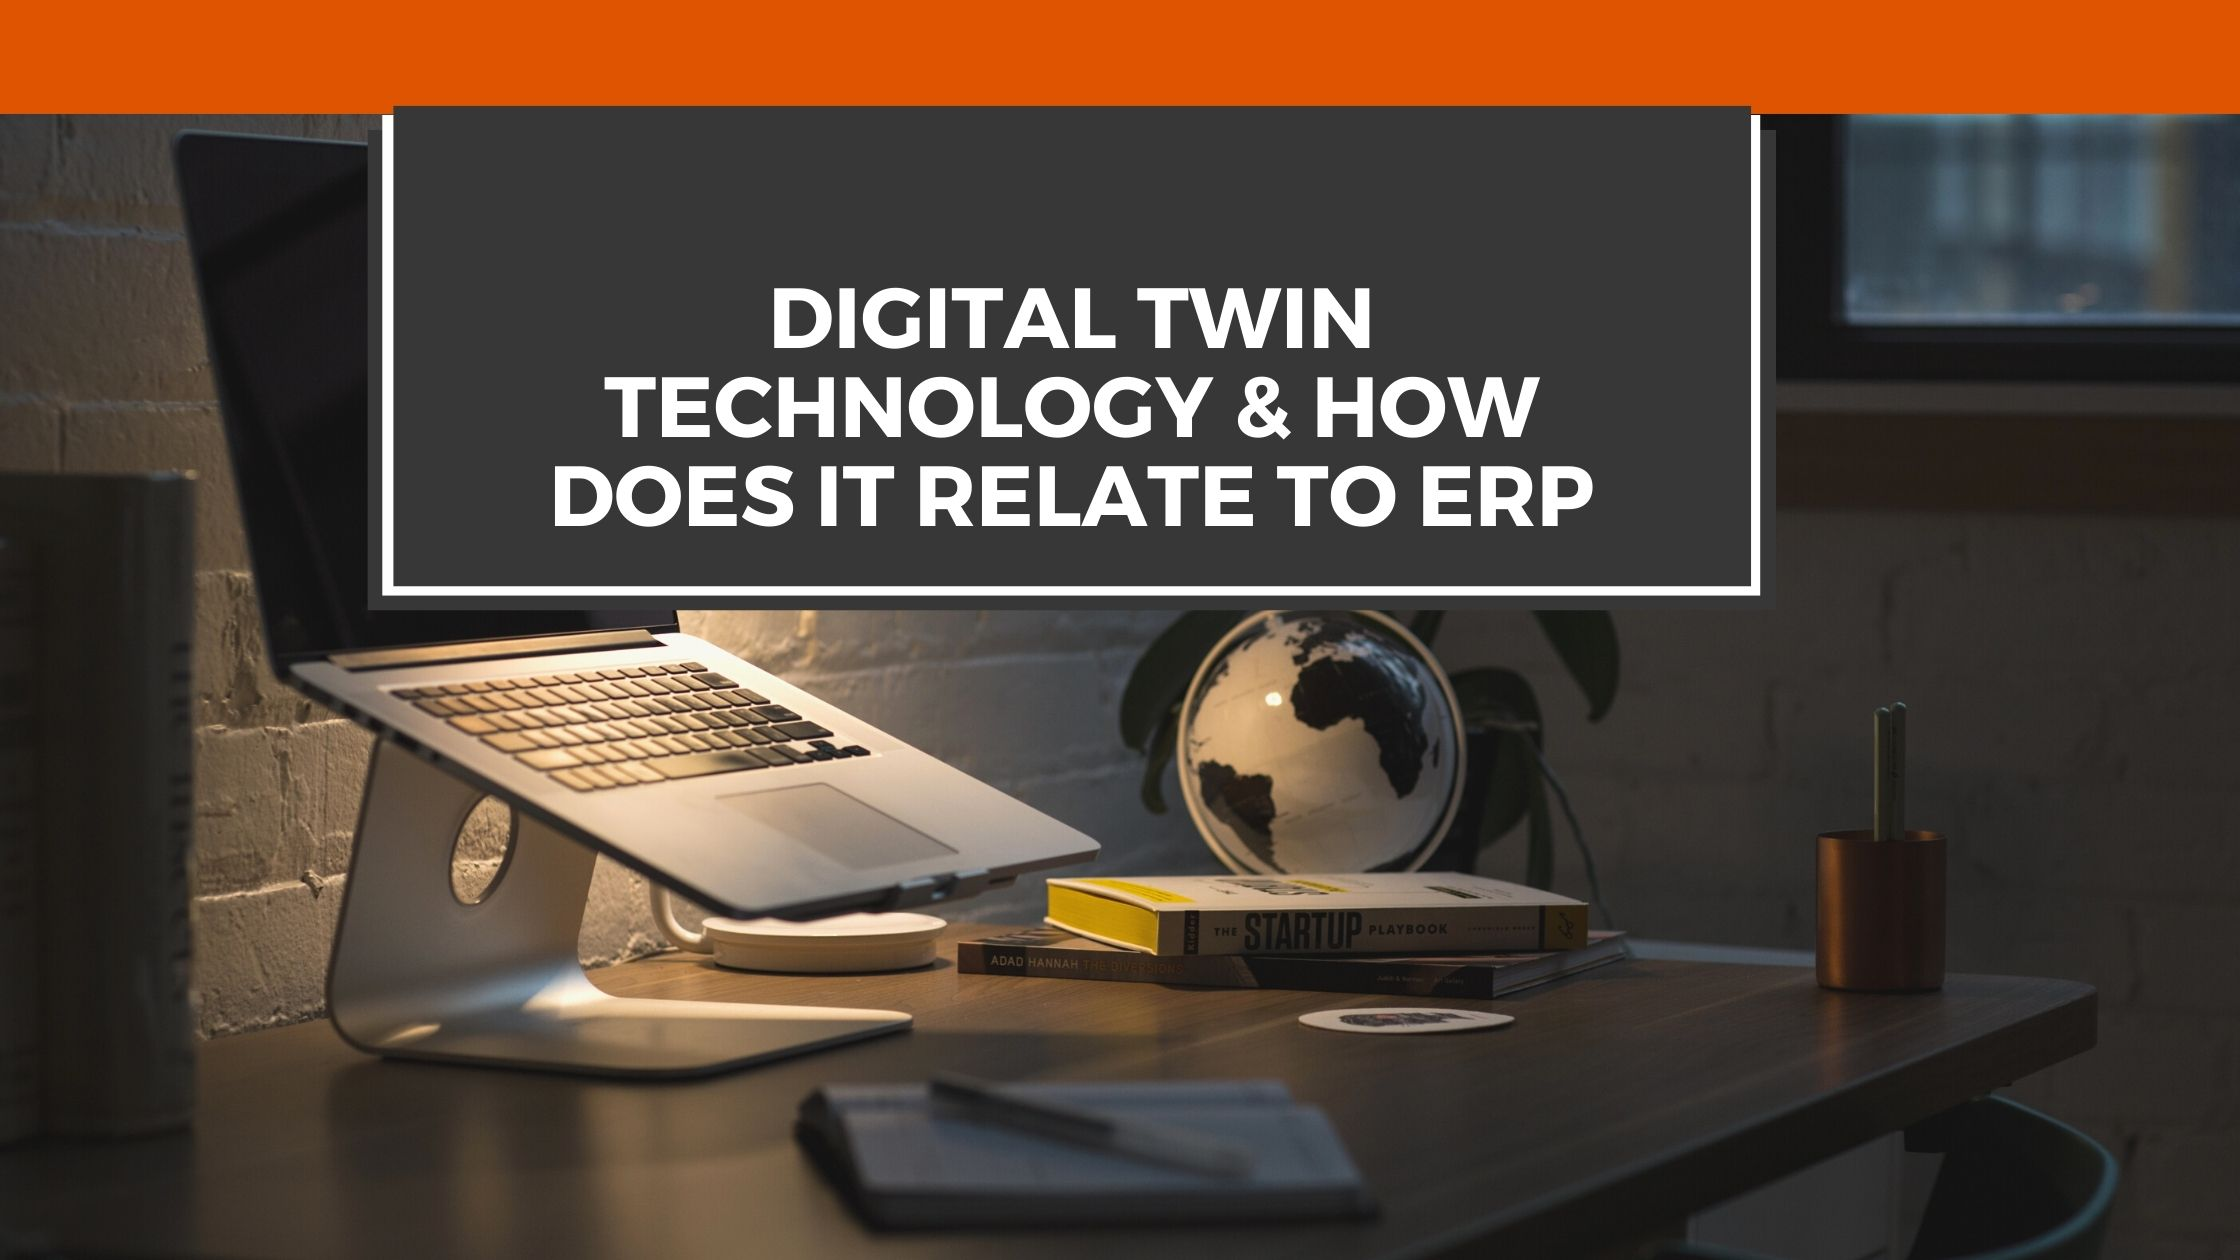 Digital Twin Technology & How Does It Relate To ERP